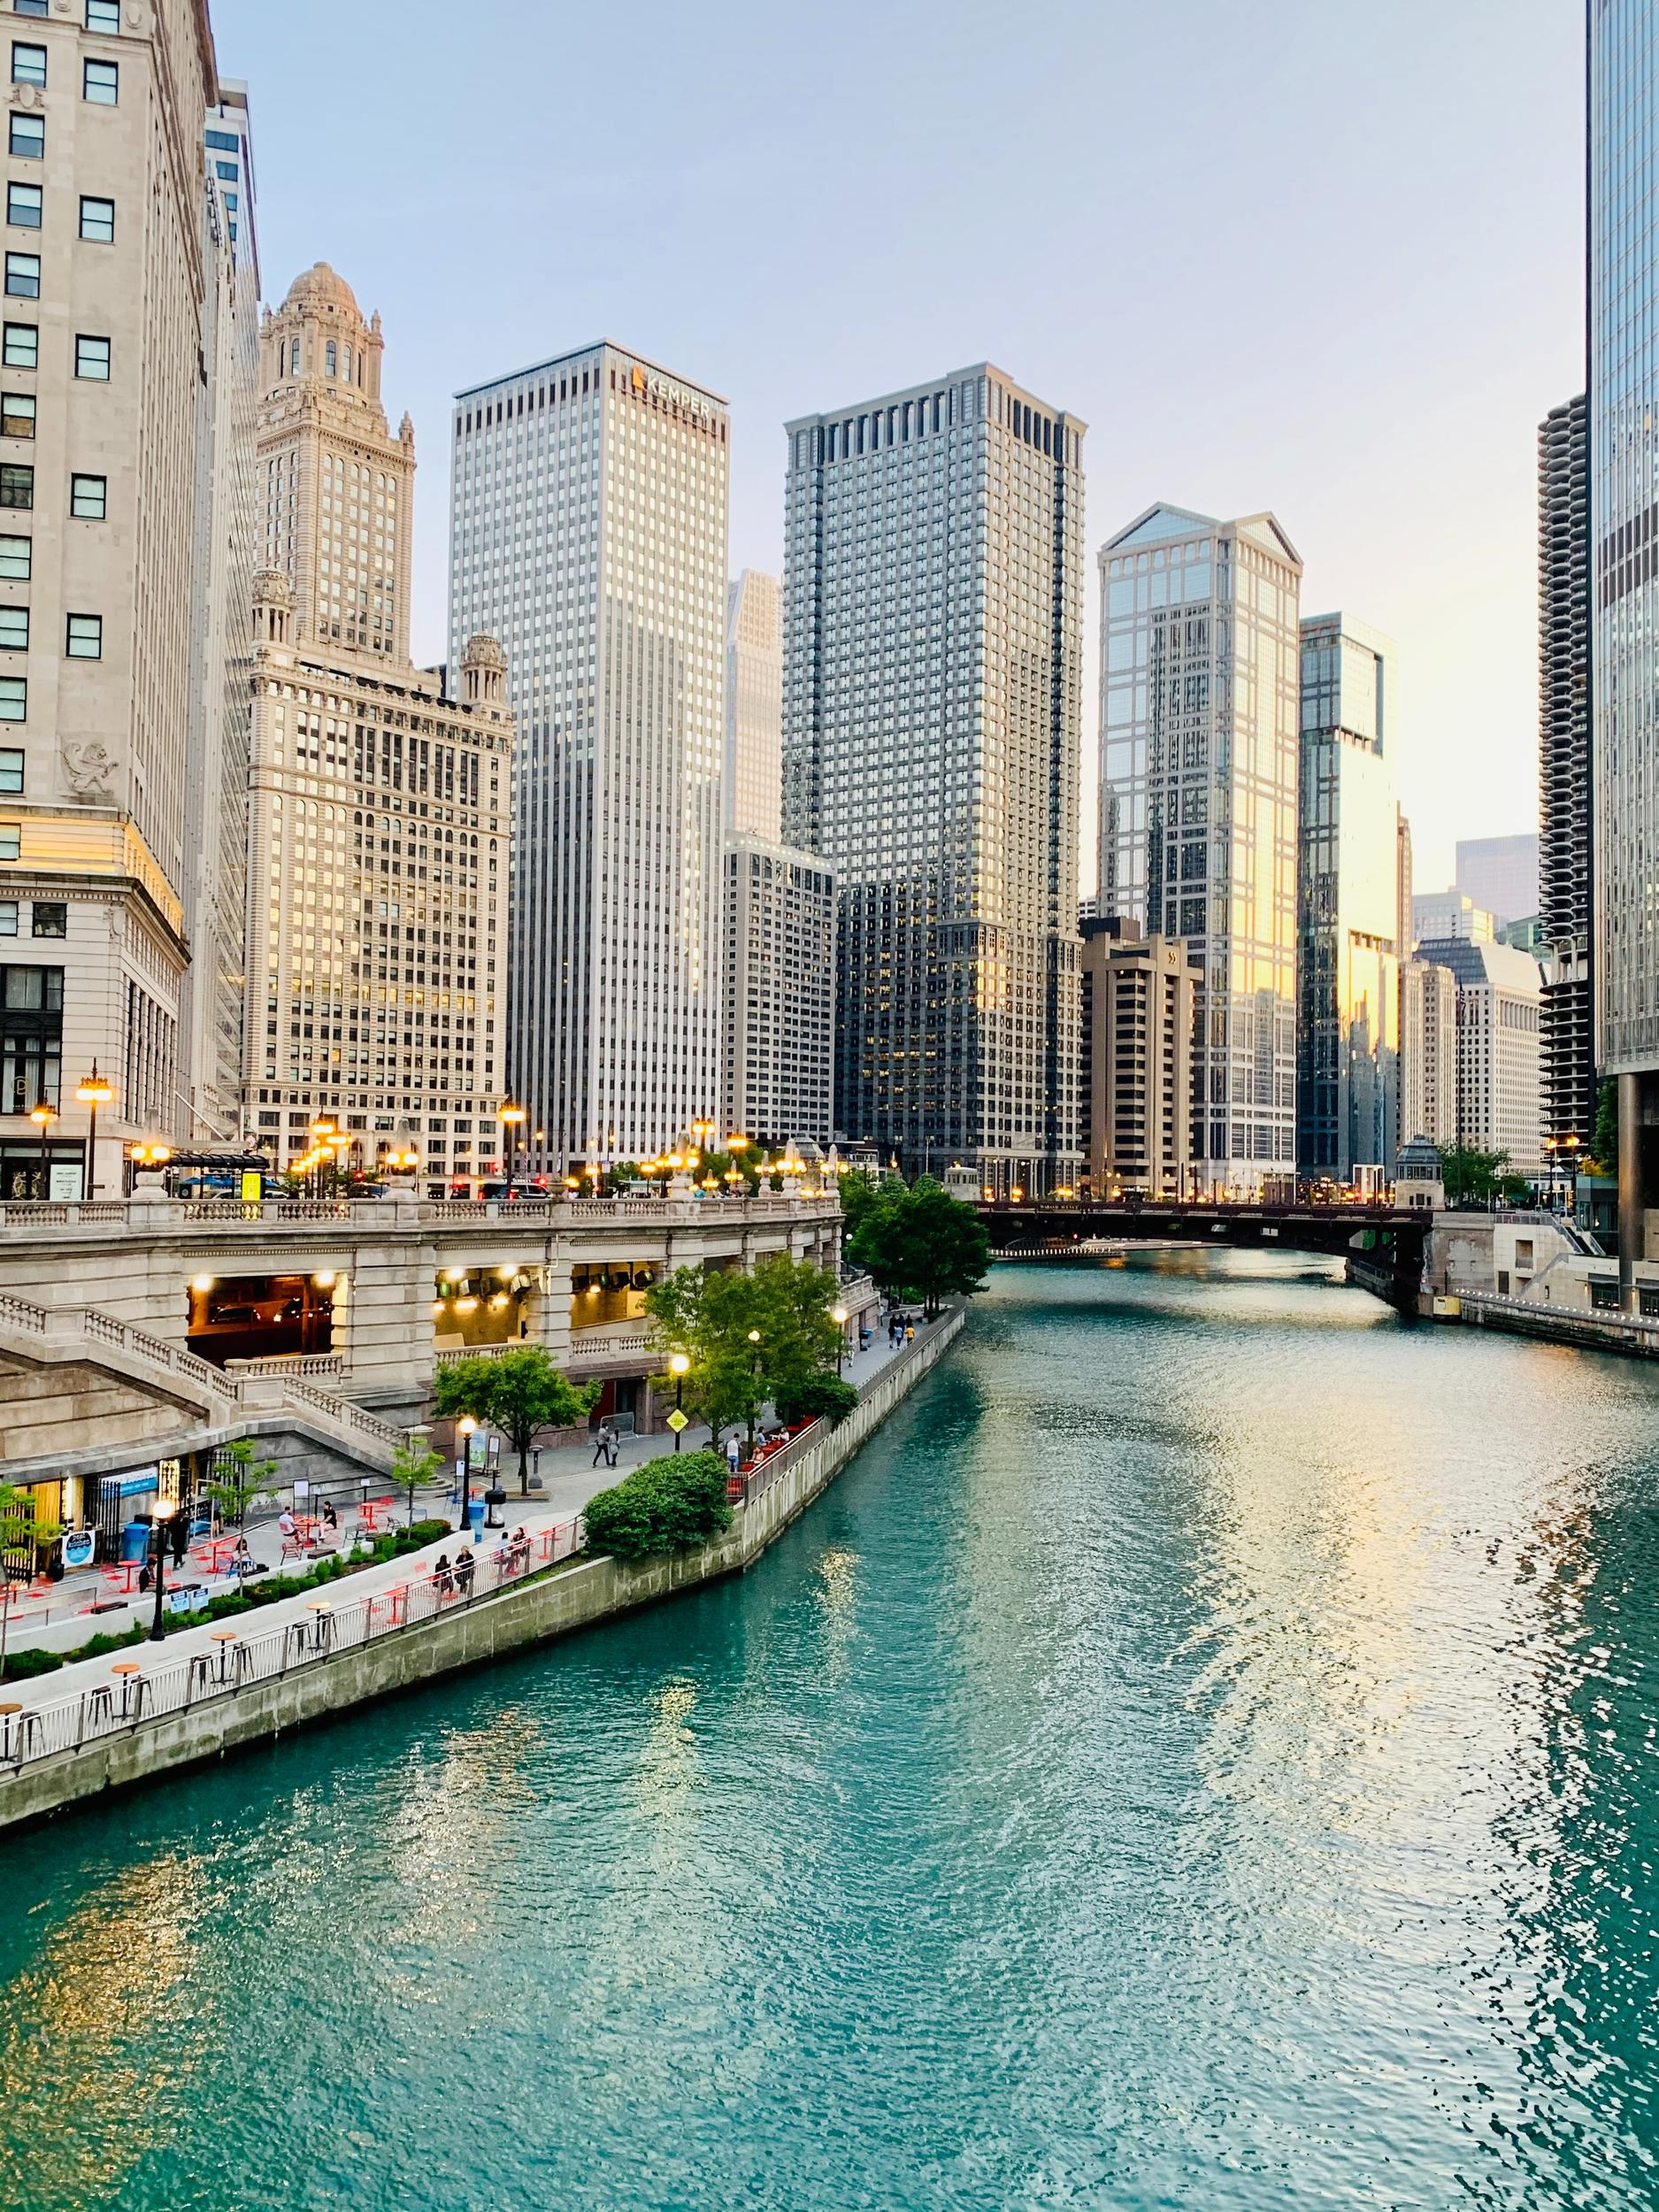 21 of the Best FREE Things to Do in Chicago